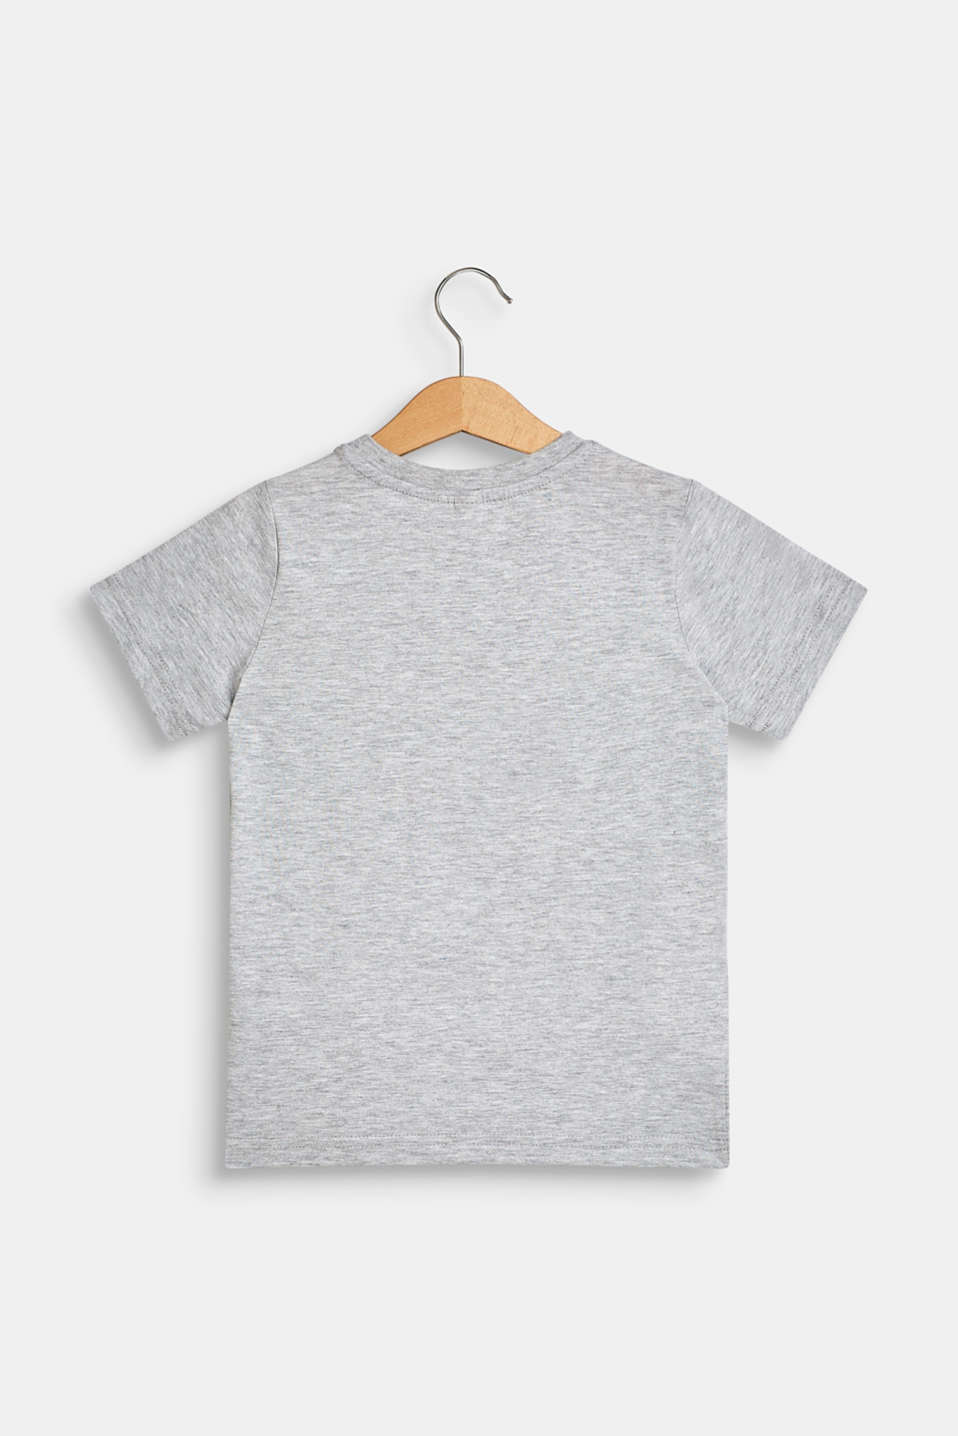 T-shirt with tropical print, 100% cotton, HEATHER SILVER, detail image number 1